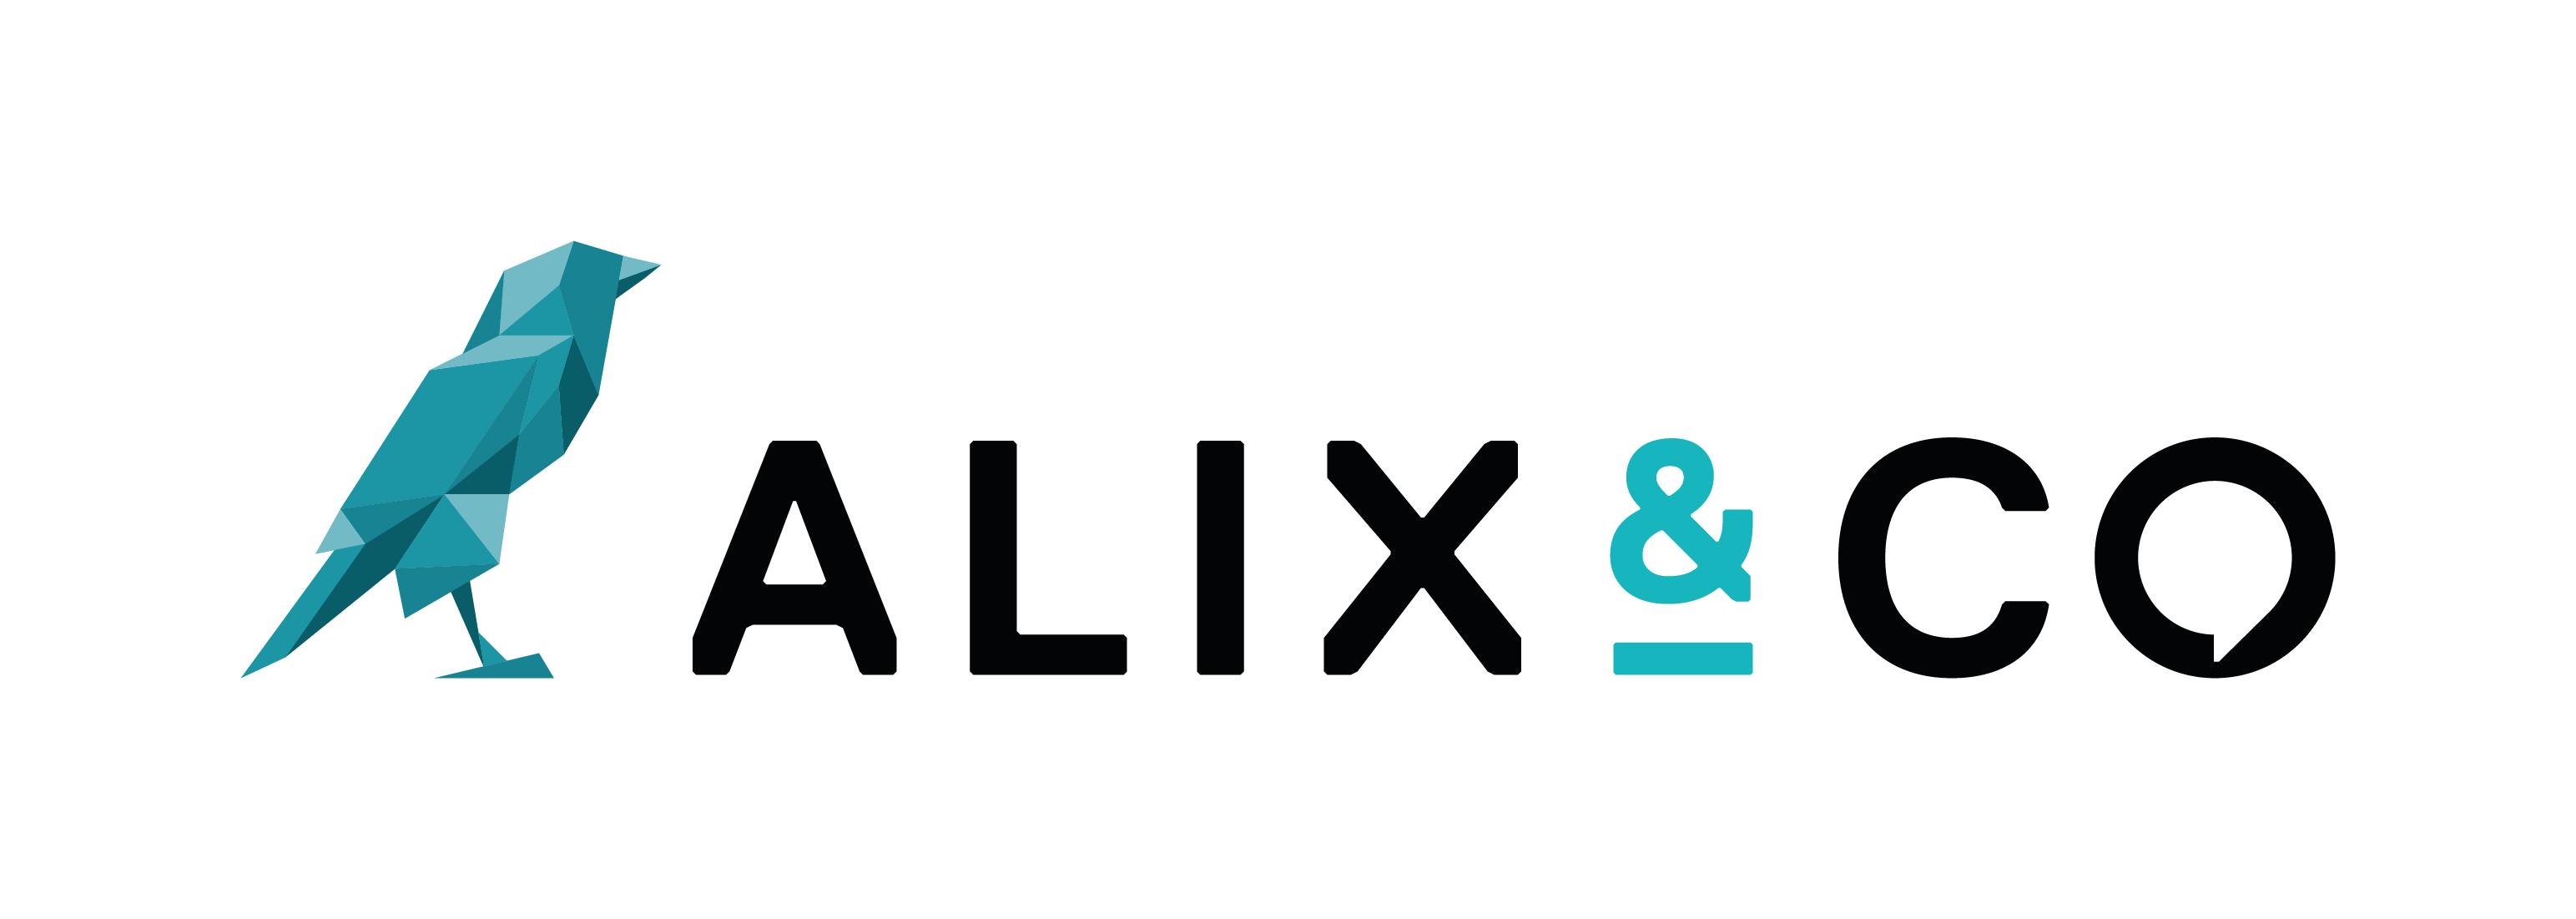 Logo d'Alix and co